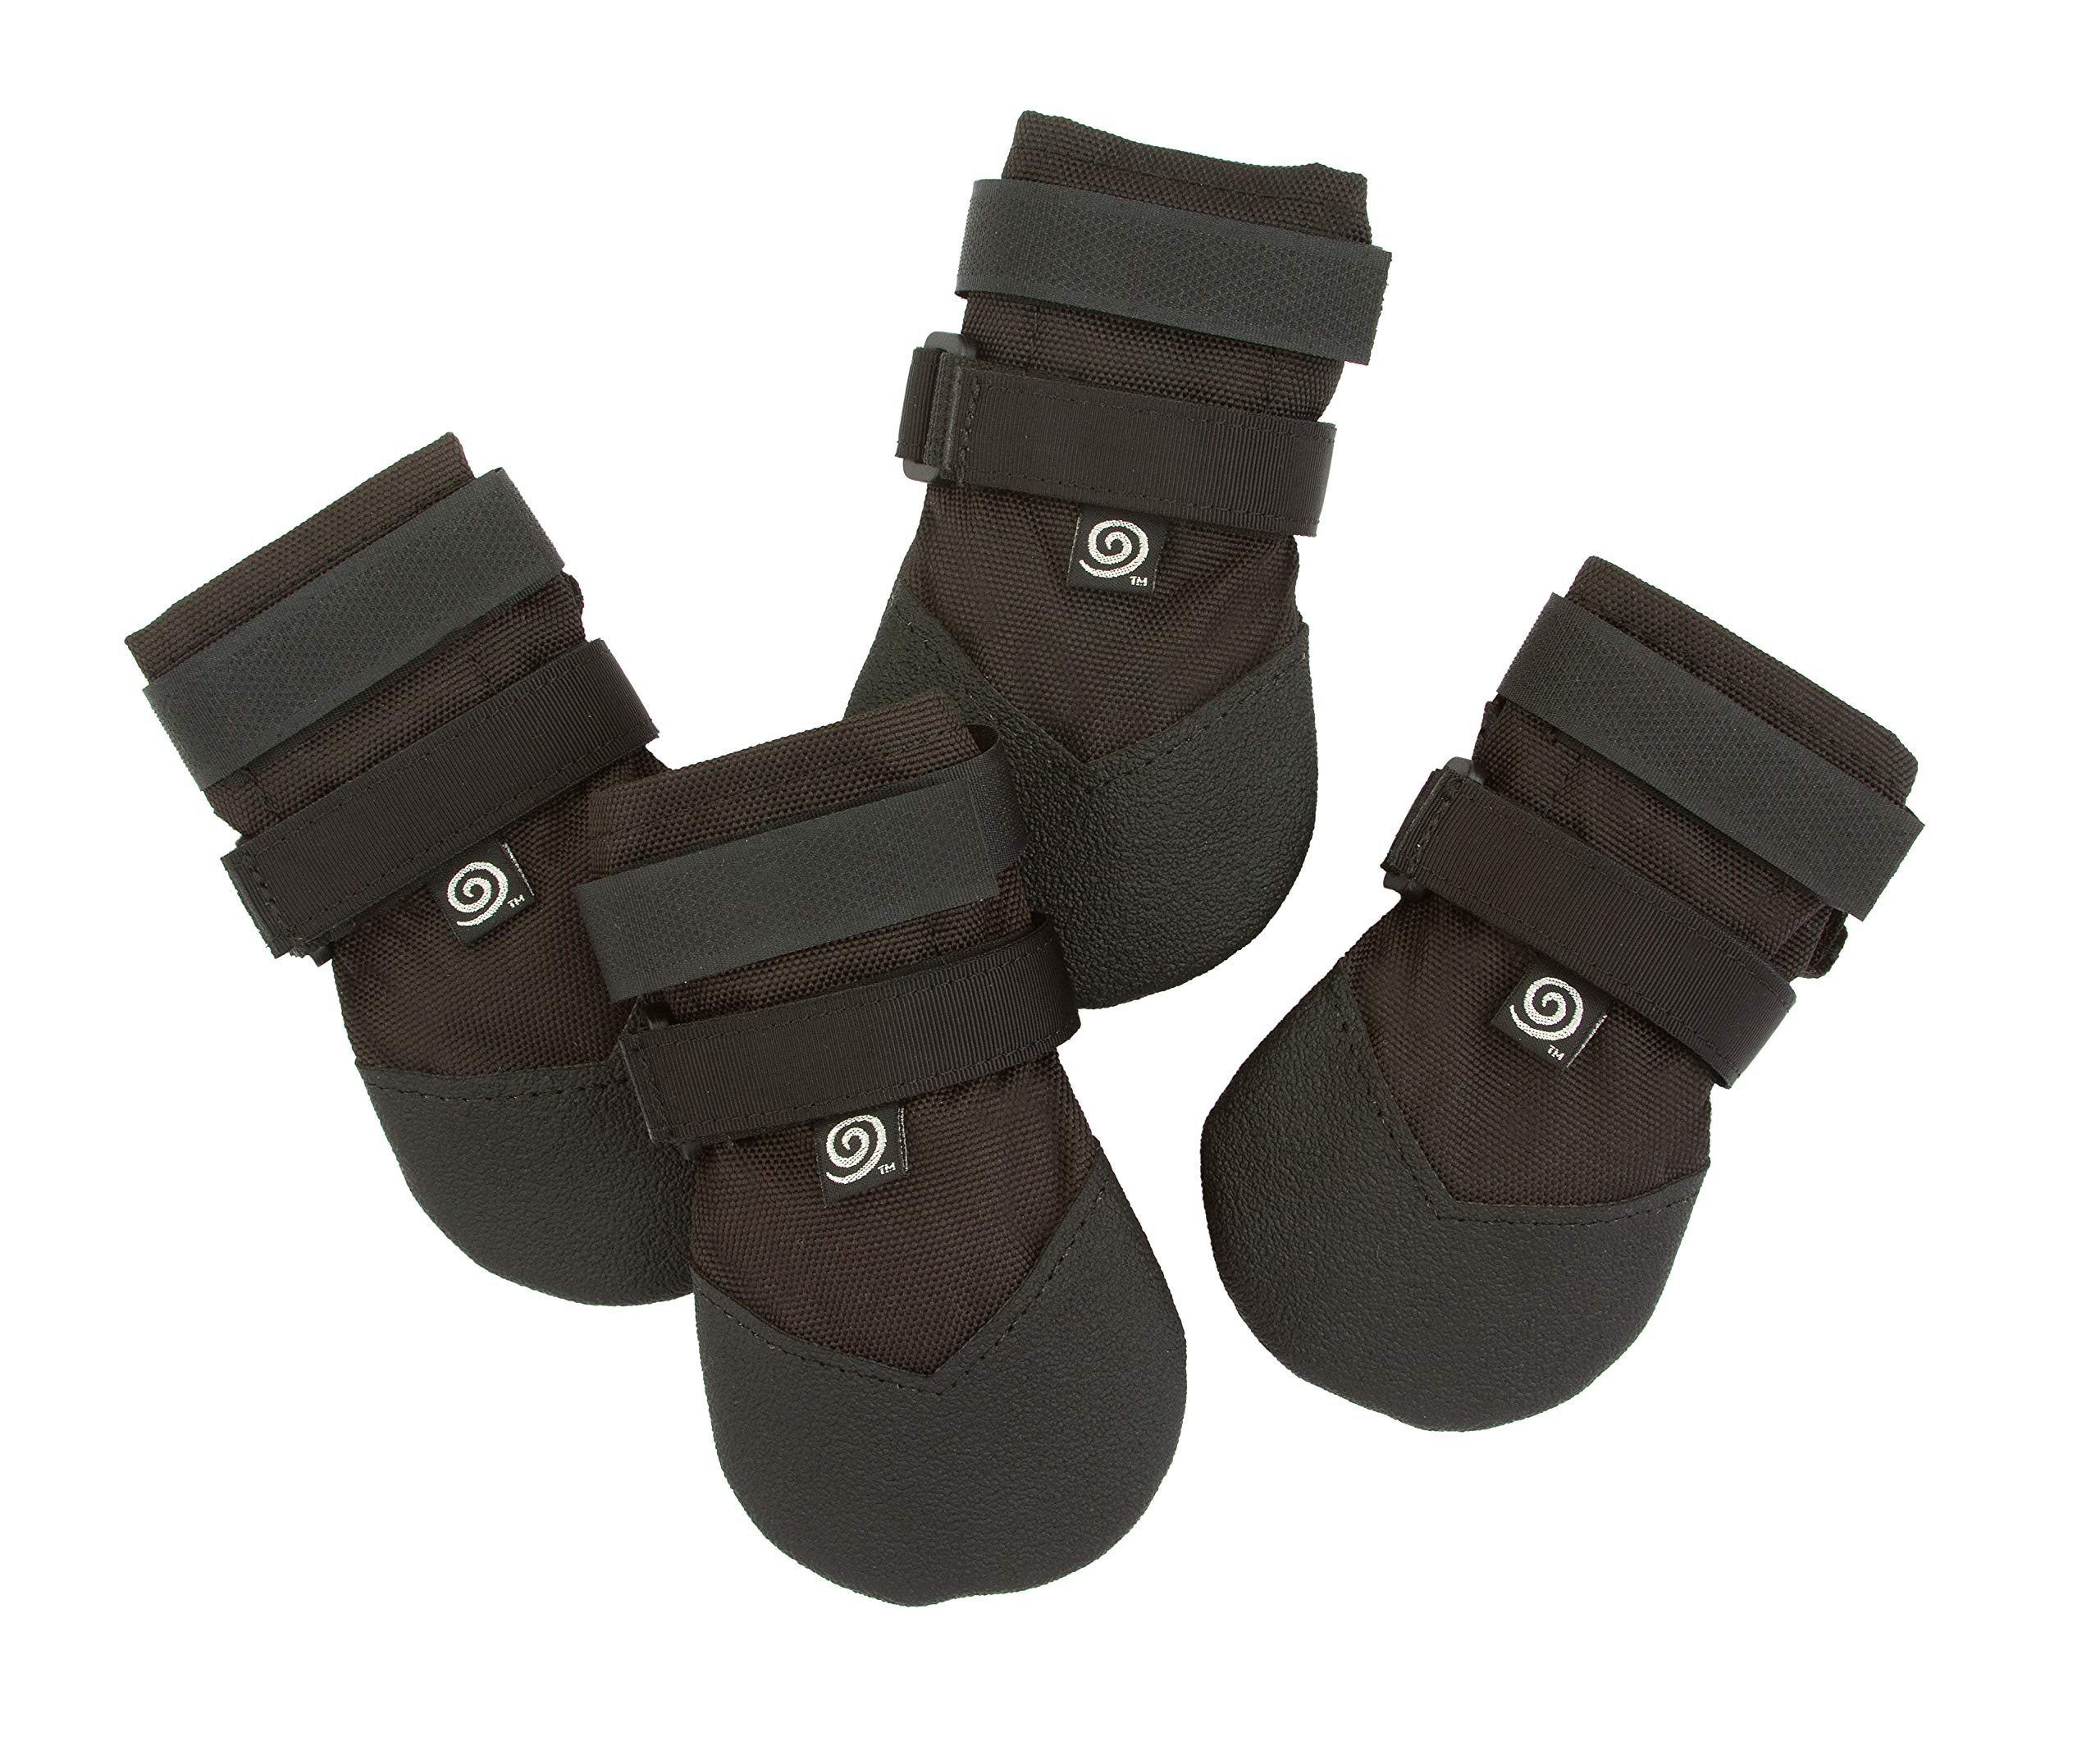 Ultra Paws Light Duty Water Resistant Dog Boots for Small, Medium and Large Dogs